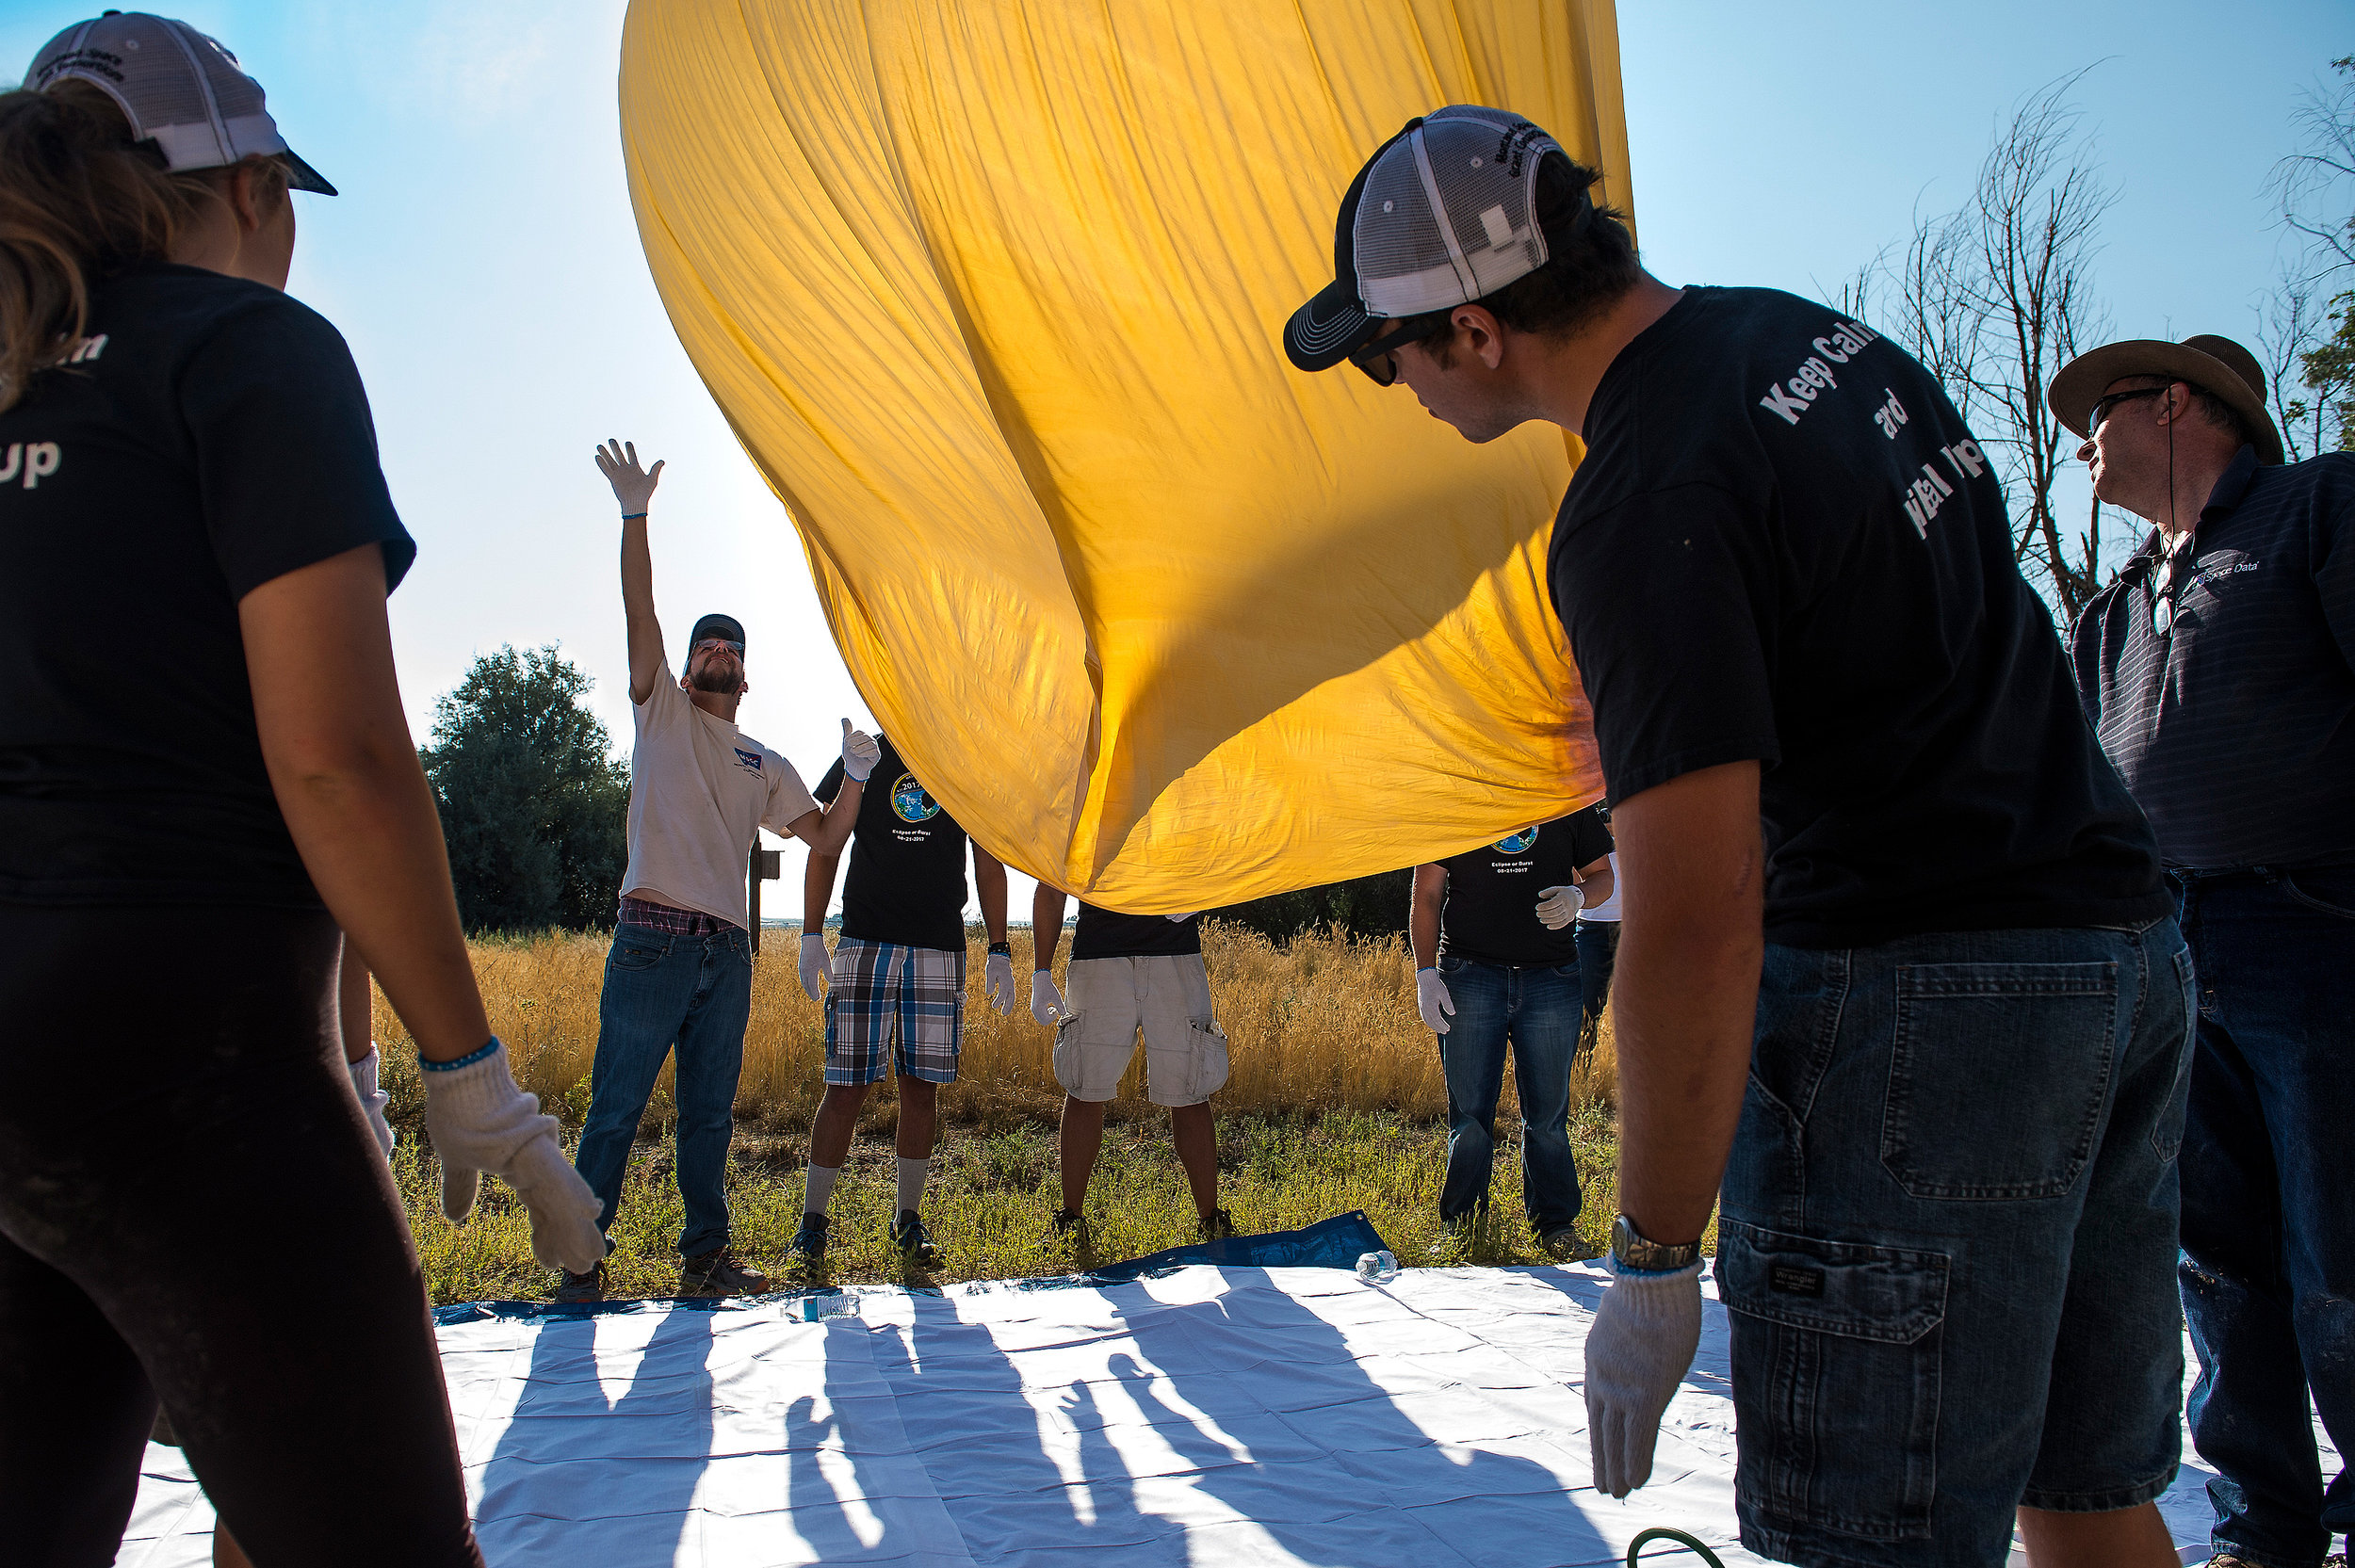 A latex balloon undulates and lifts off the ground as the MSU team fills it with helium. The team launched three balloons in roughly an hour before the eclipse so that cameras and other equipment they carried would reach the desired altitude during totality.